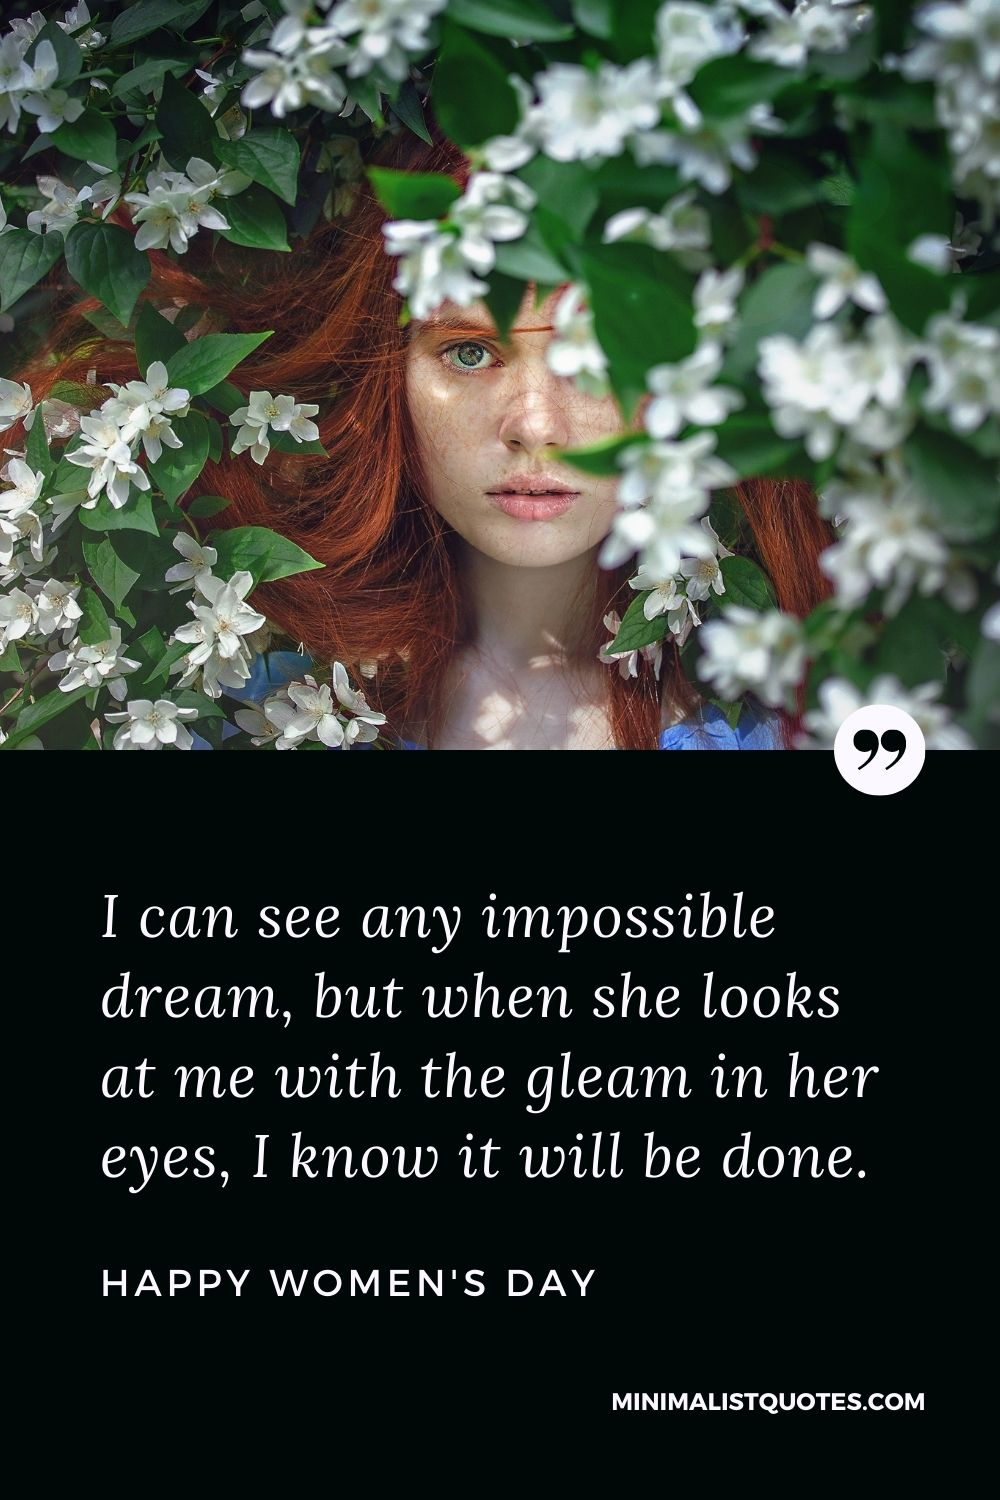 Women's Day Wish & Message With HD Image: I can see any impossible dream, but when she looks at me with the gleam in her eyes, I know it will be done.Happy Women's Day!